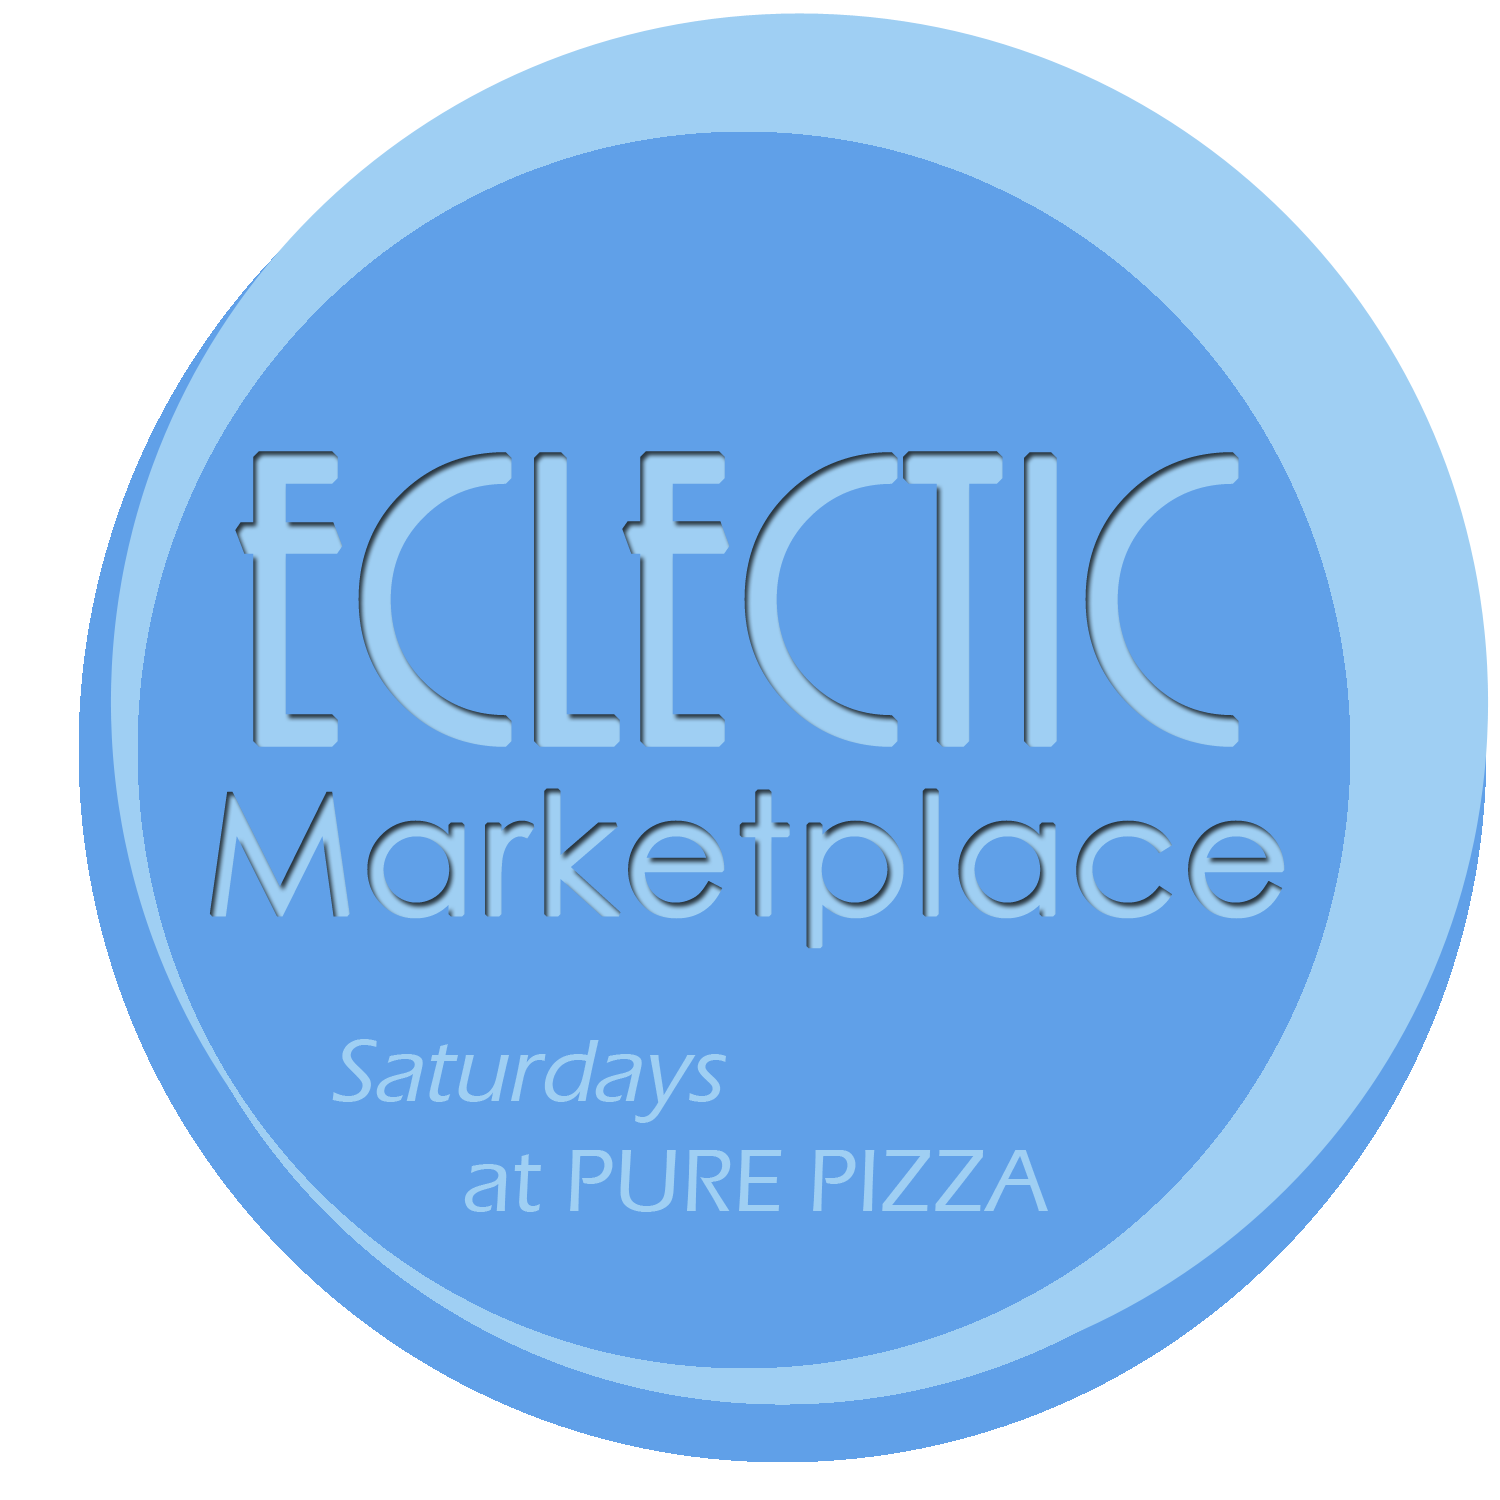 Eclectic Marketplace